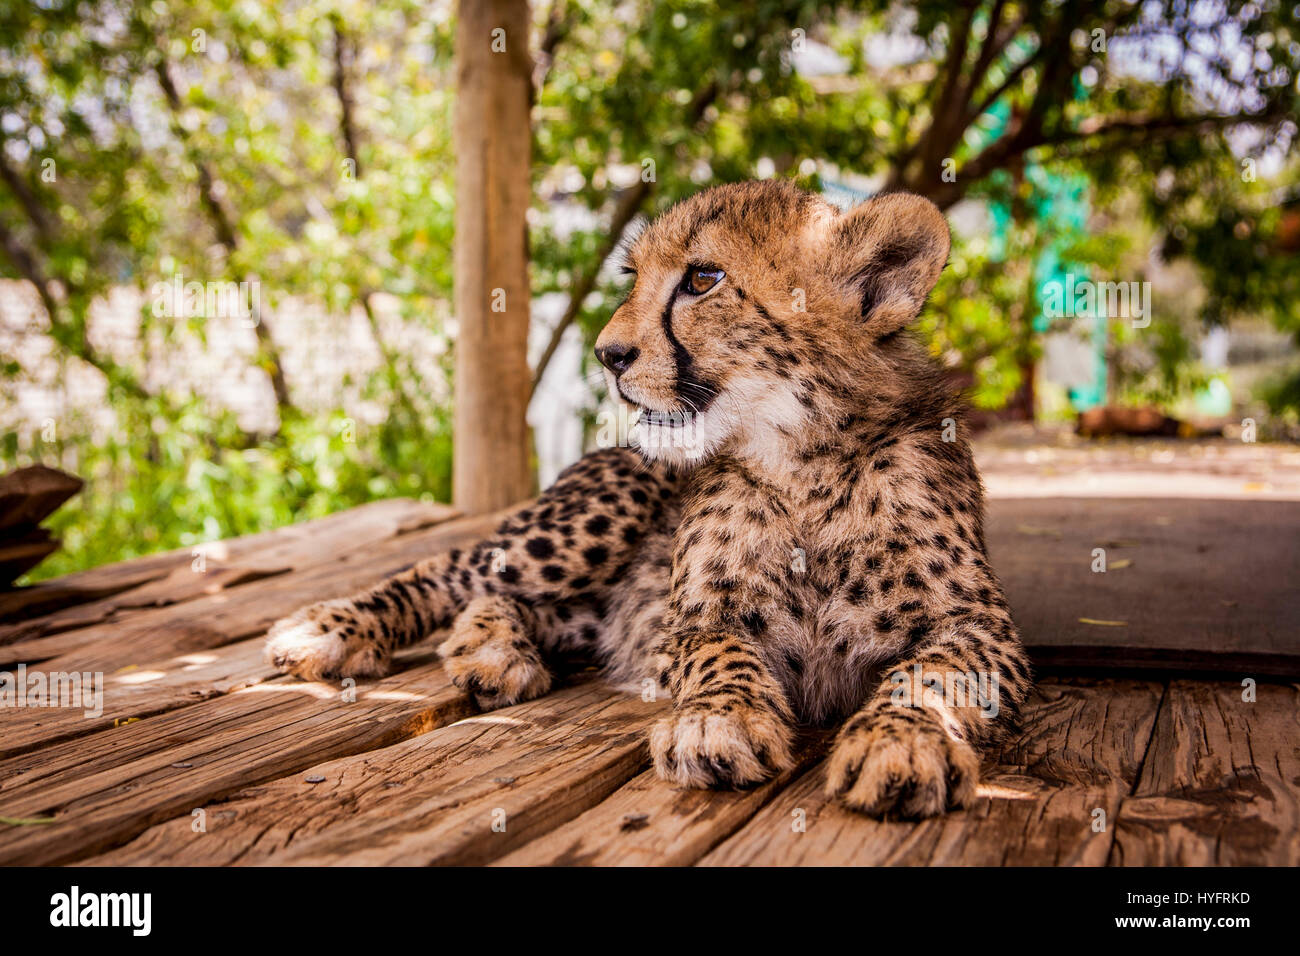 Cheetah in South-Africa - Stock Image